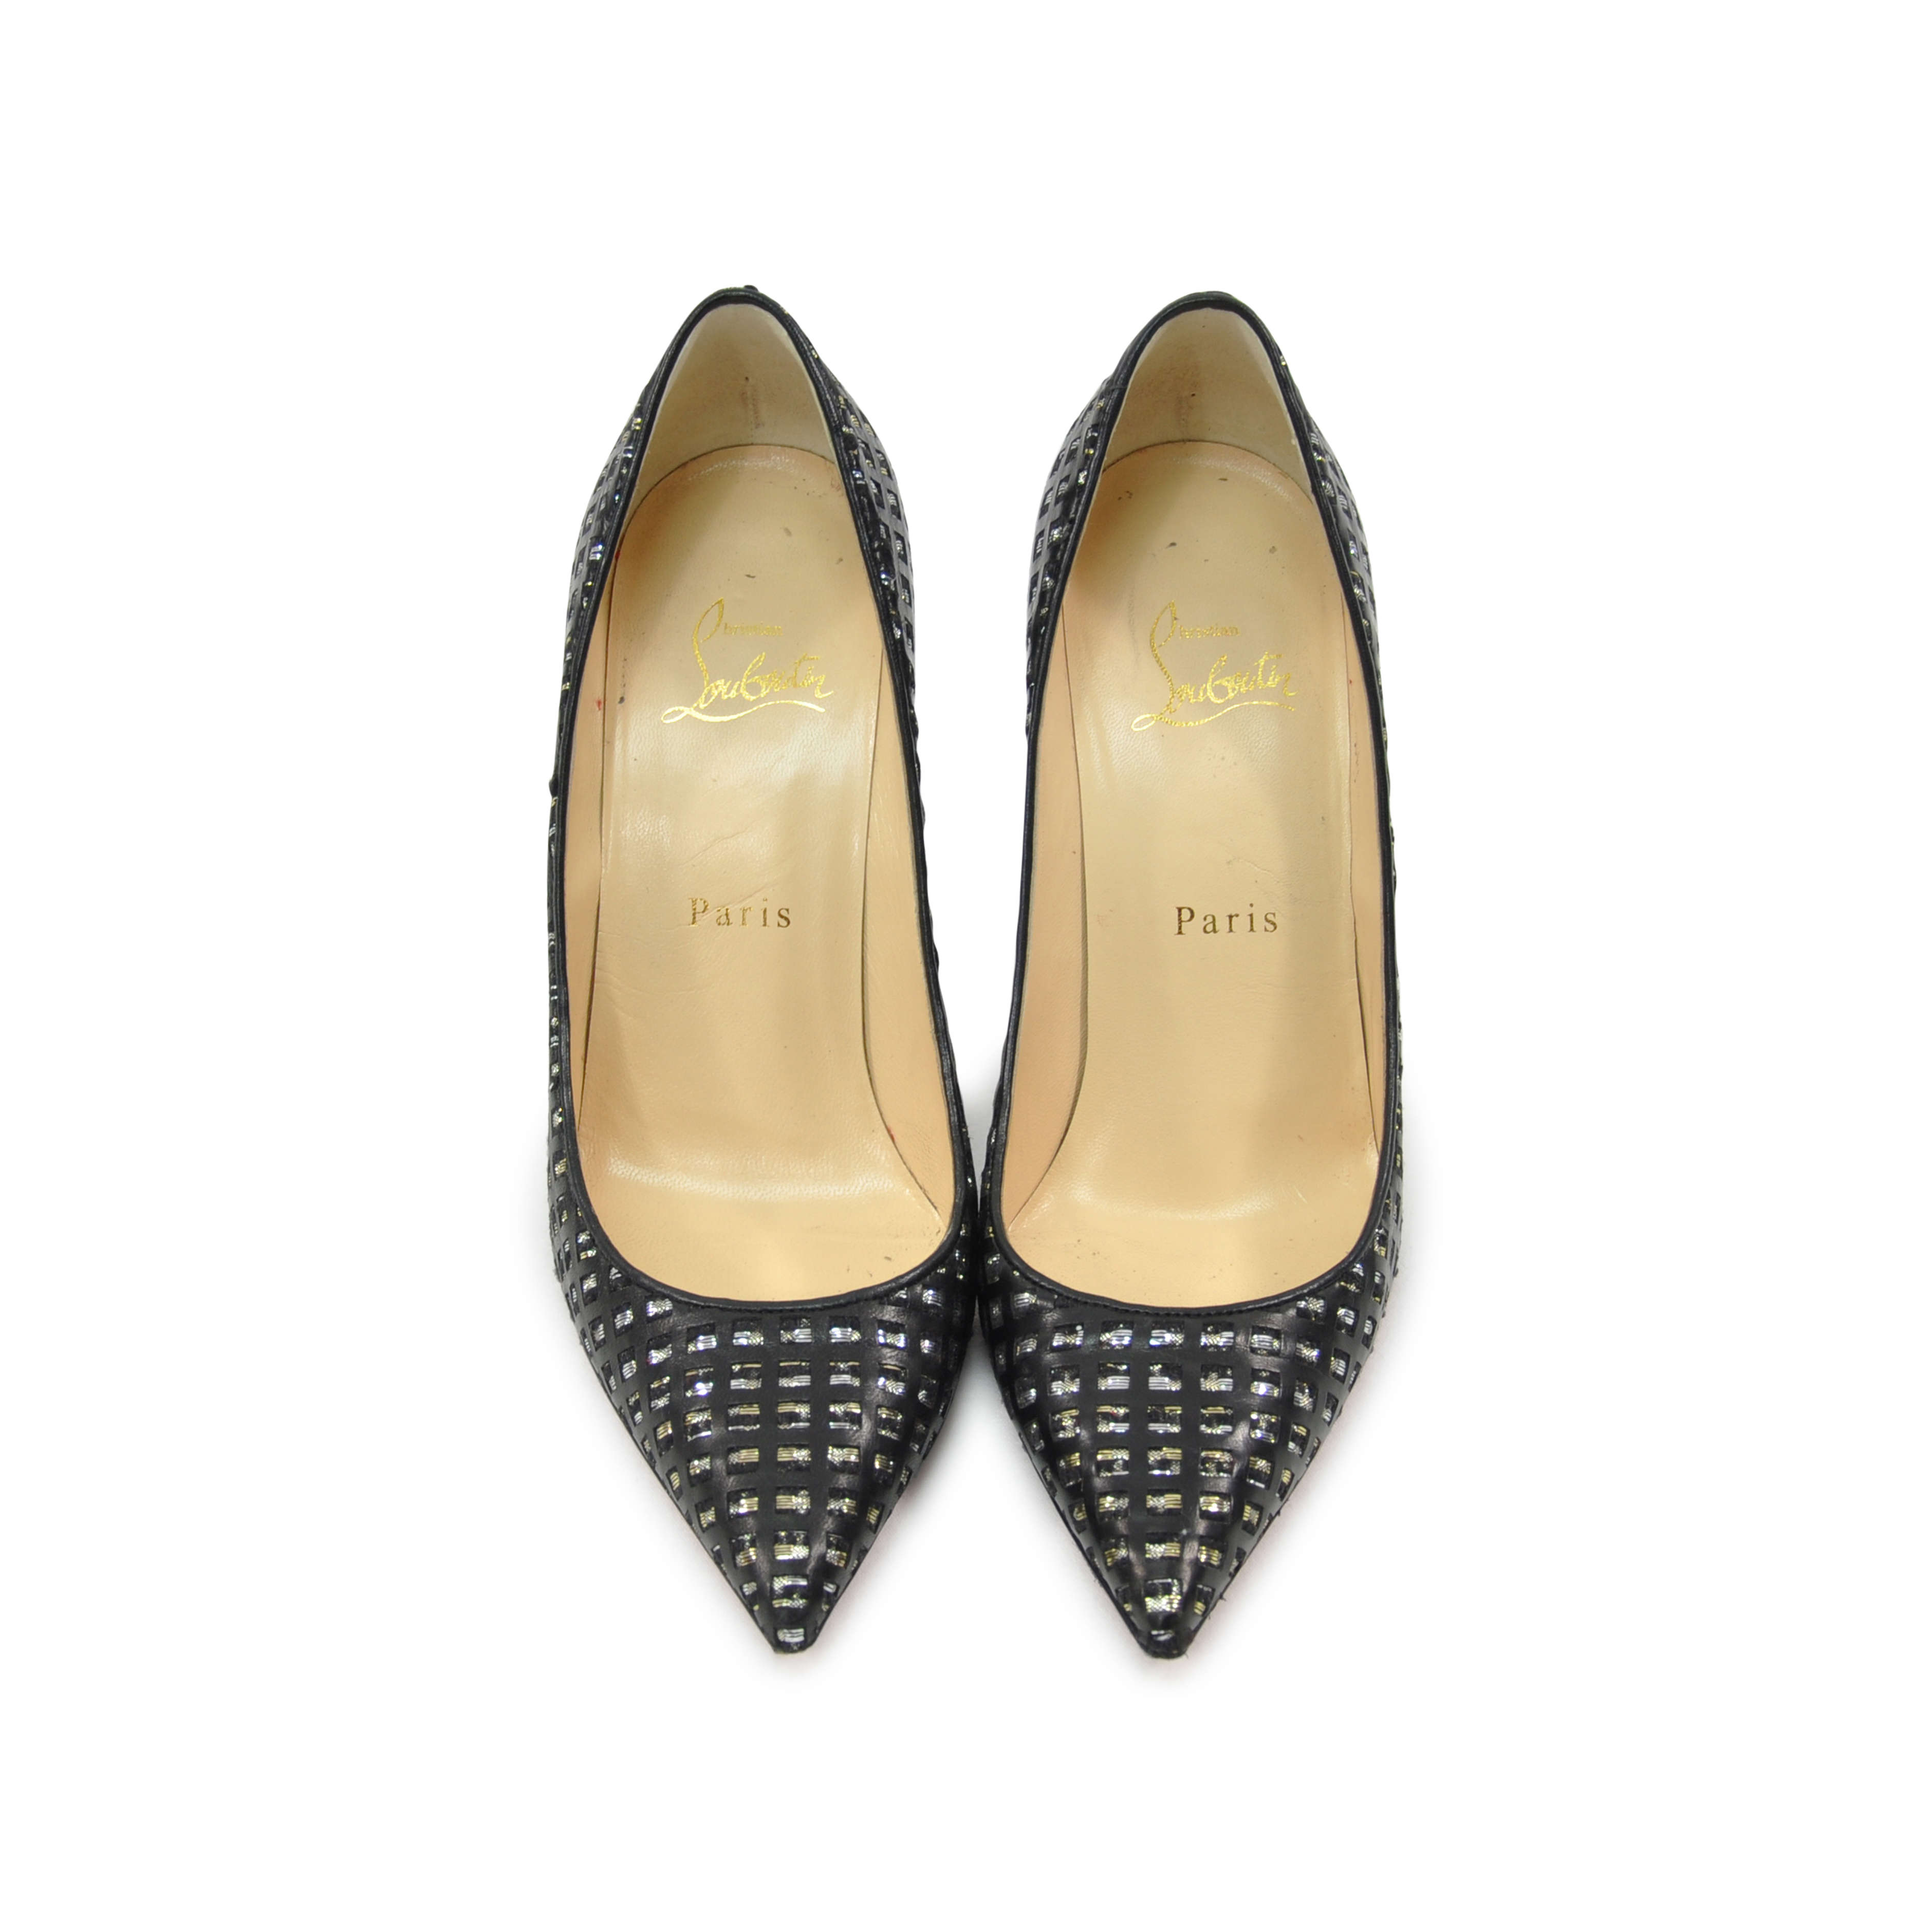 2babd4cab7d Authentic Second Hand Christian Louboutin So Kate Woven Pumps  (PSS-328-00006)